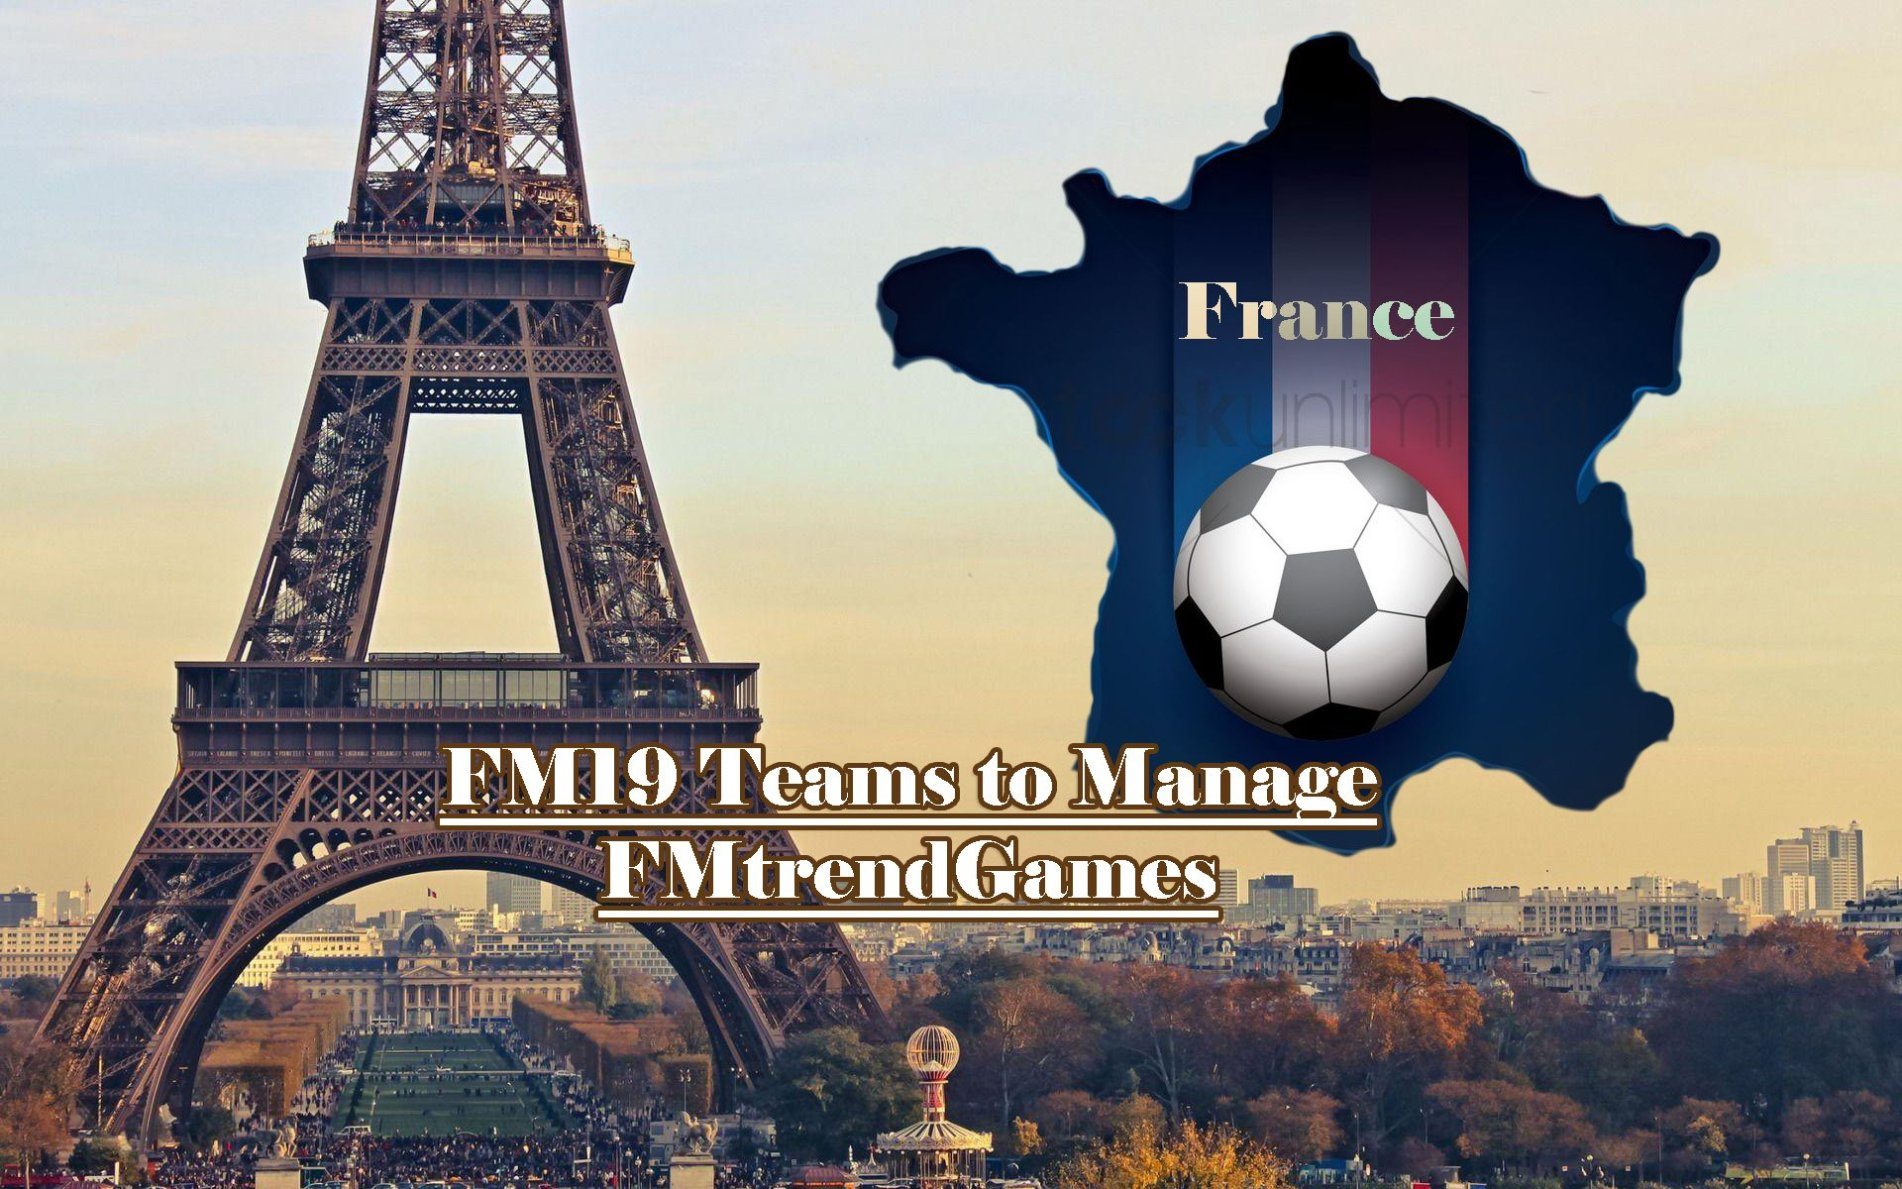 FM19 Teams: 8 Interesting Teams to Manage in France | FMtrendGames